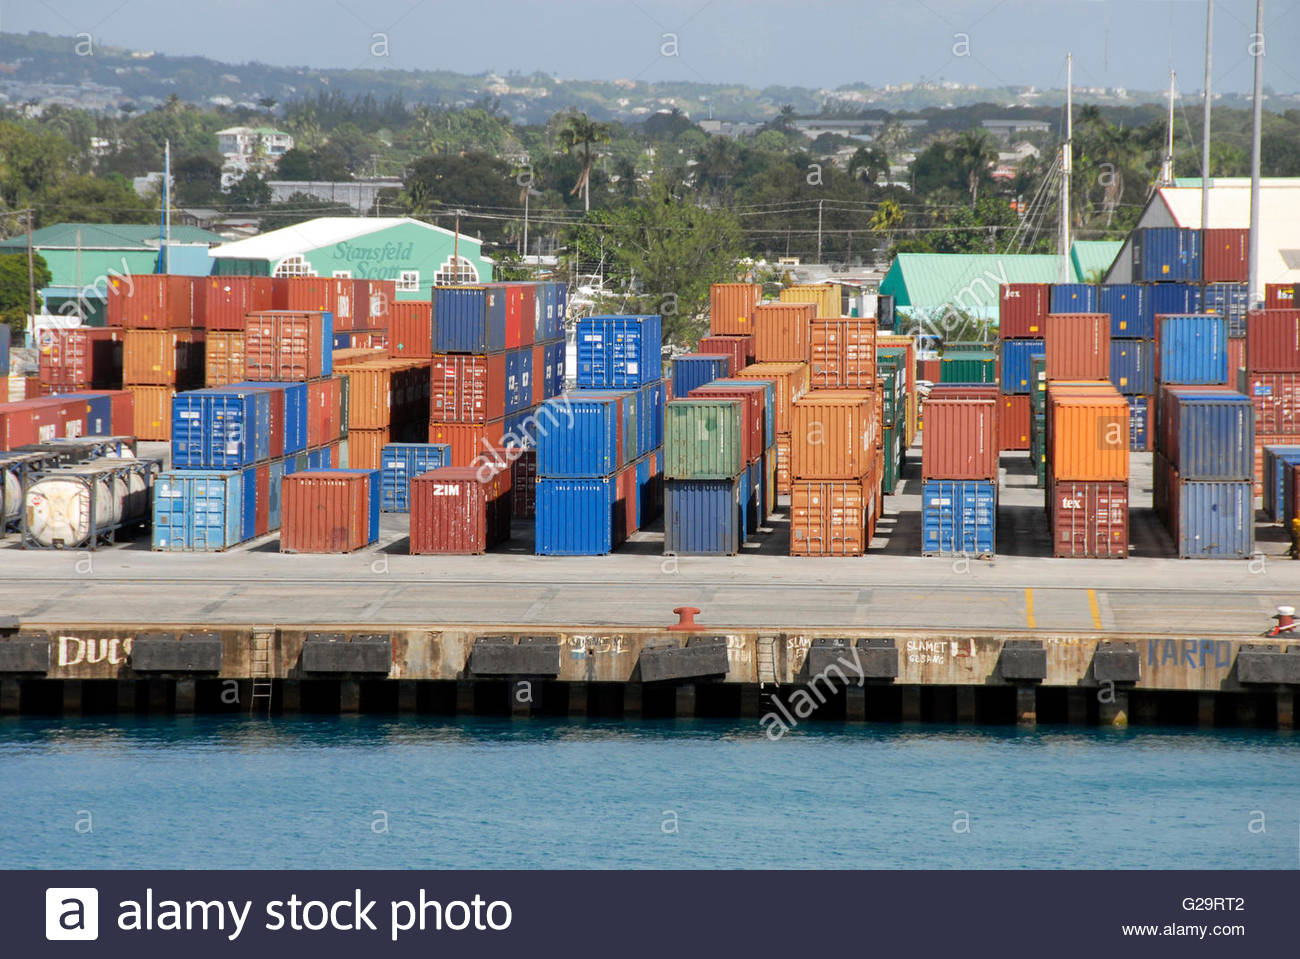 Stock Photo – Shipping containers, Bridgetown, Barbados, Caribbean